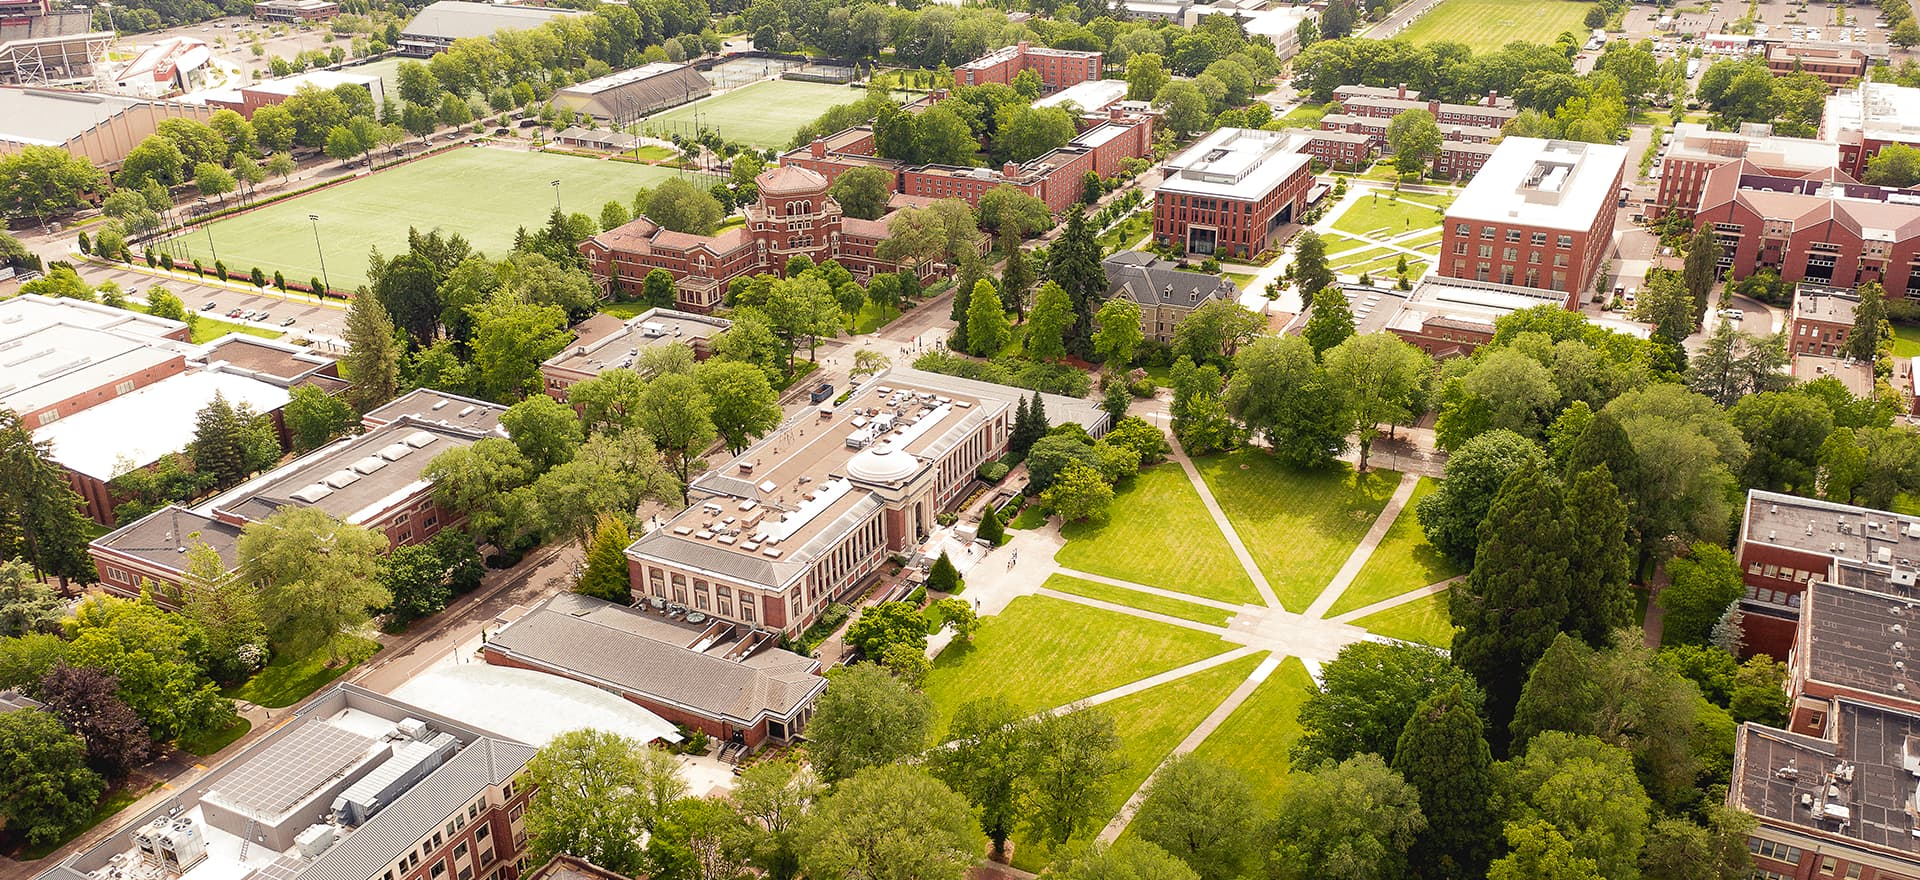 Aerial image showing the MU, quad, Weatherford and IM fields. Lots of greenery and trees as well.